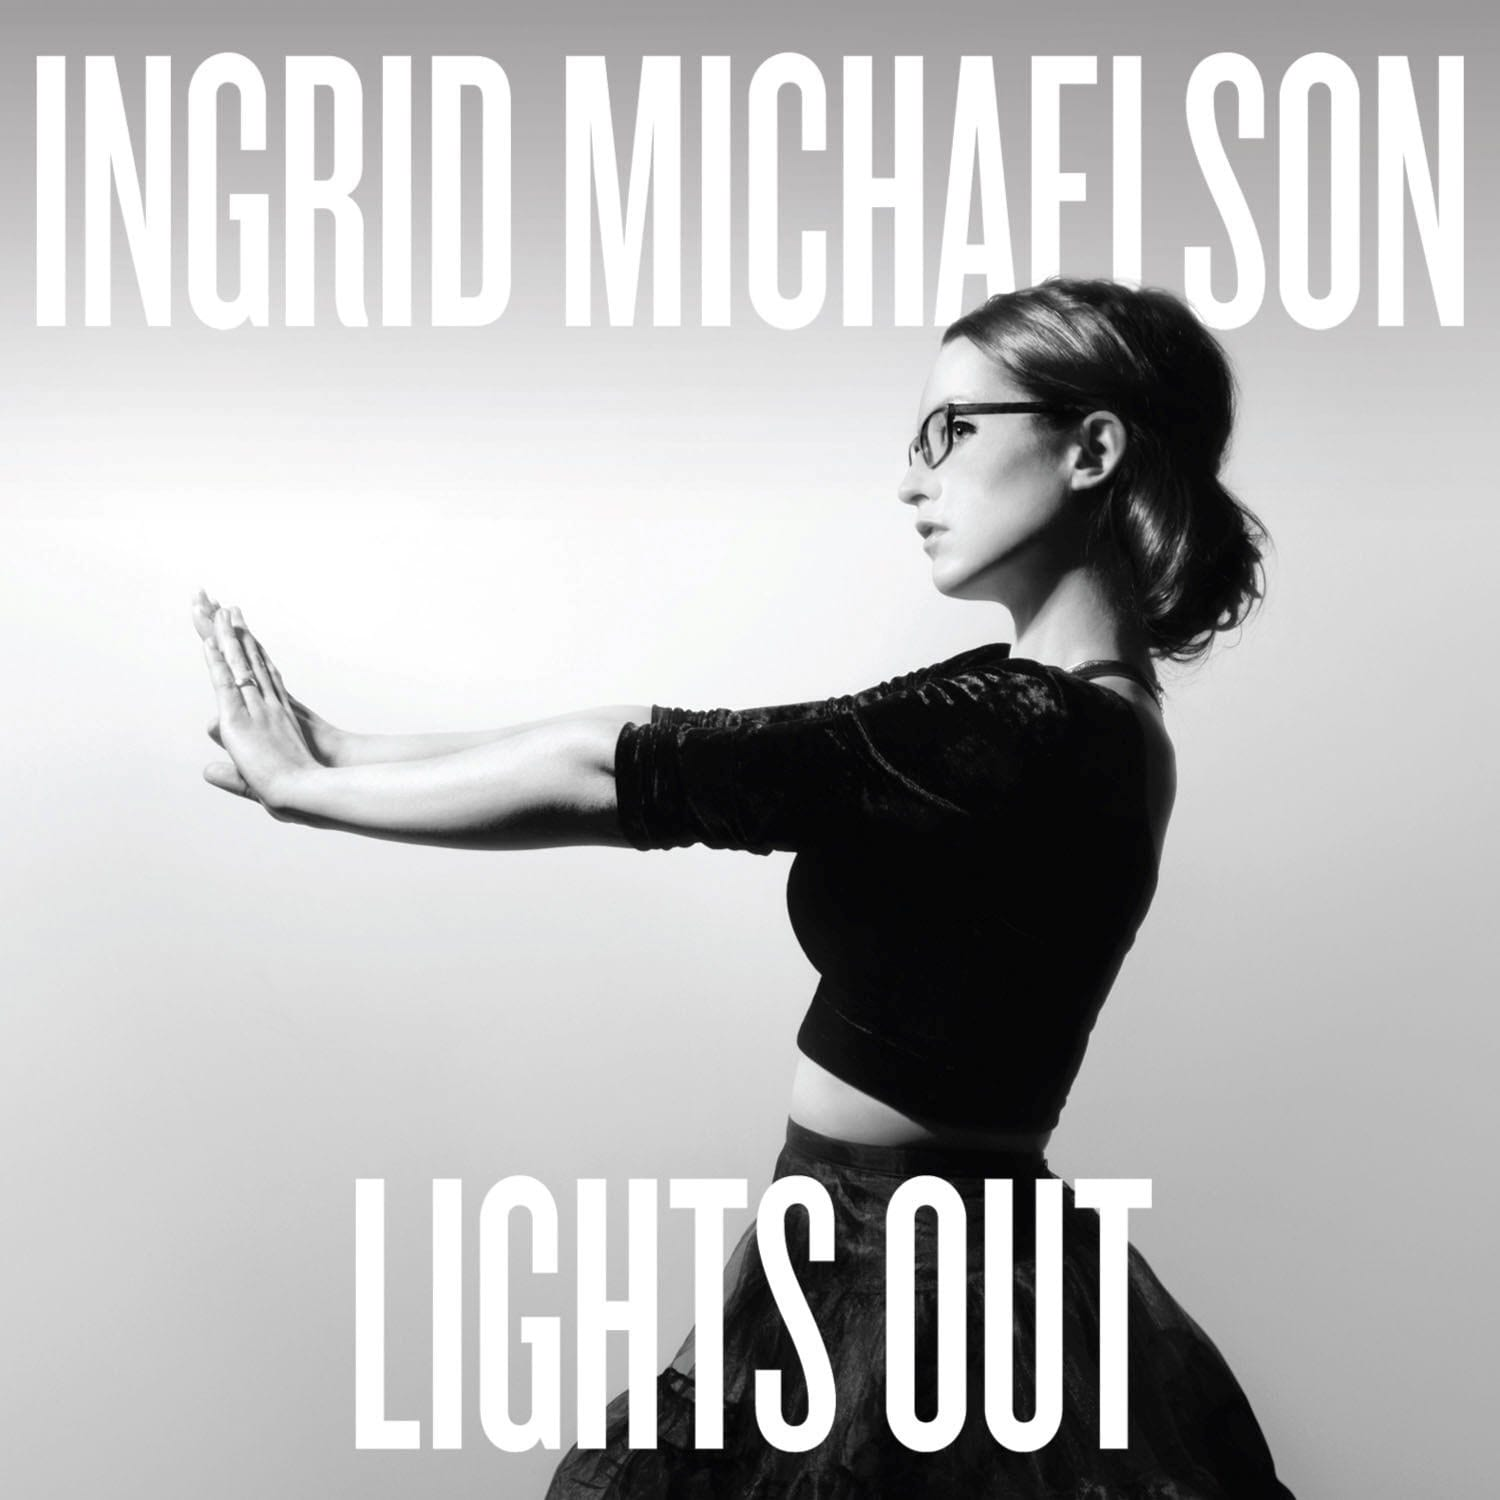 Ingrid Michaelson - Lights Out [LP] - Urban Vinyl | Records, Headphones, and more.